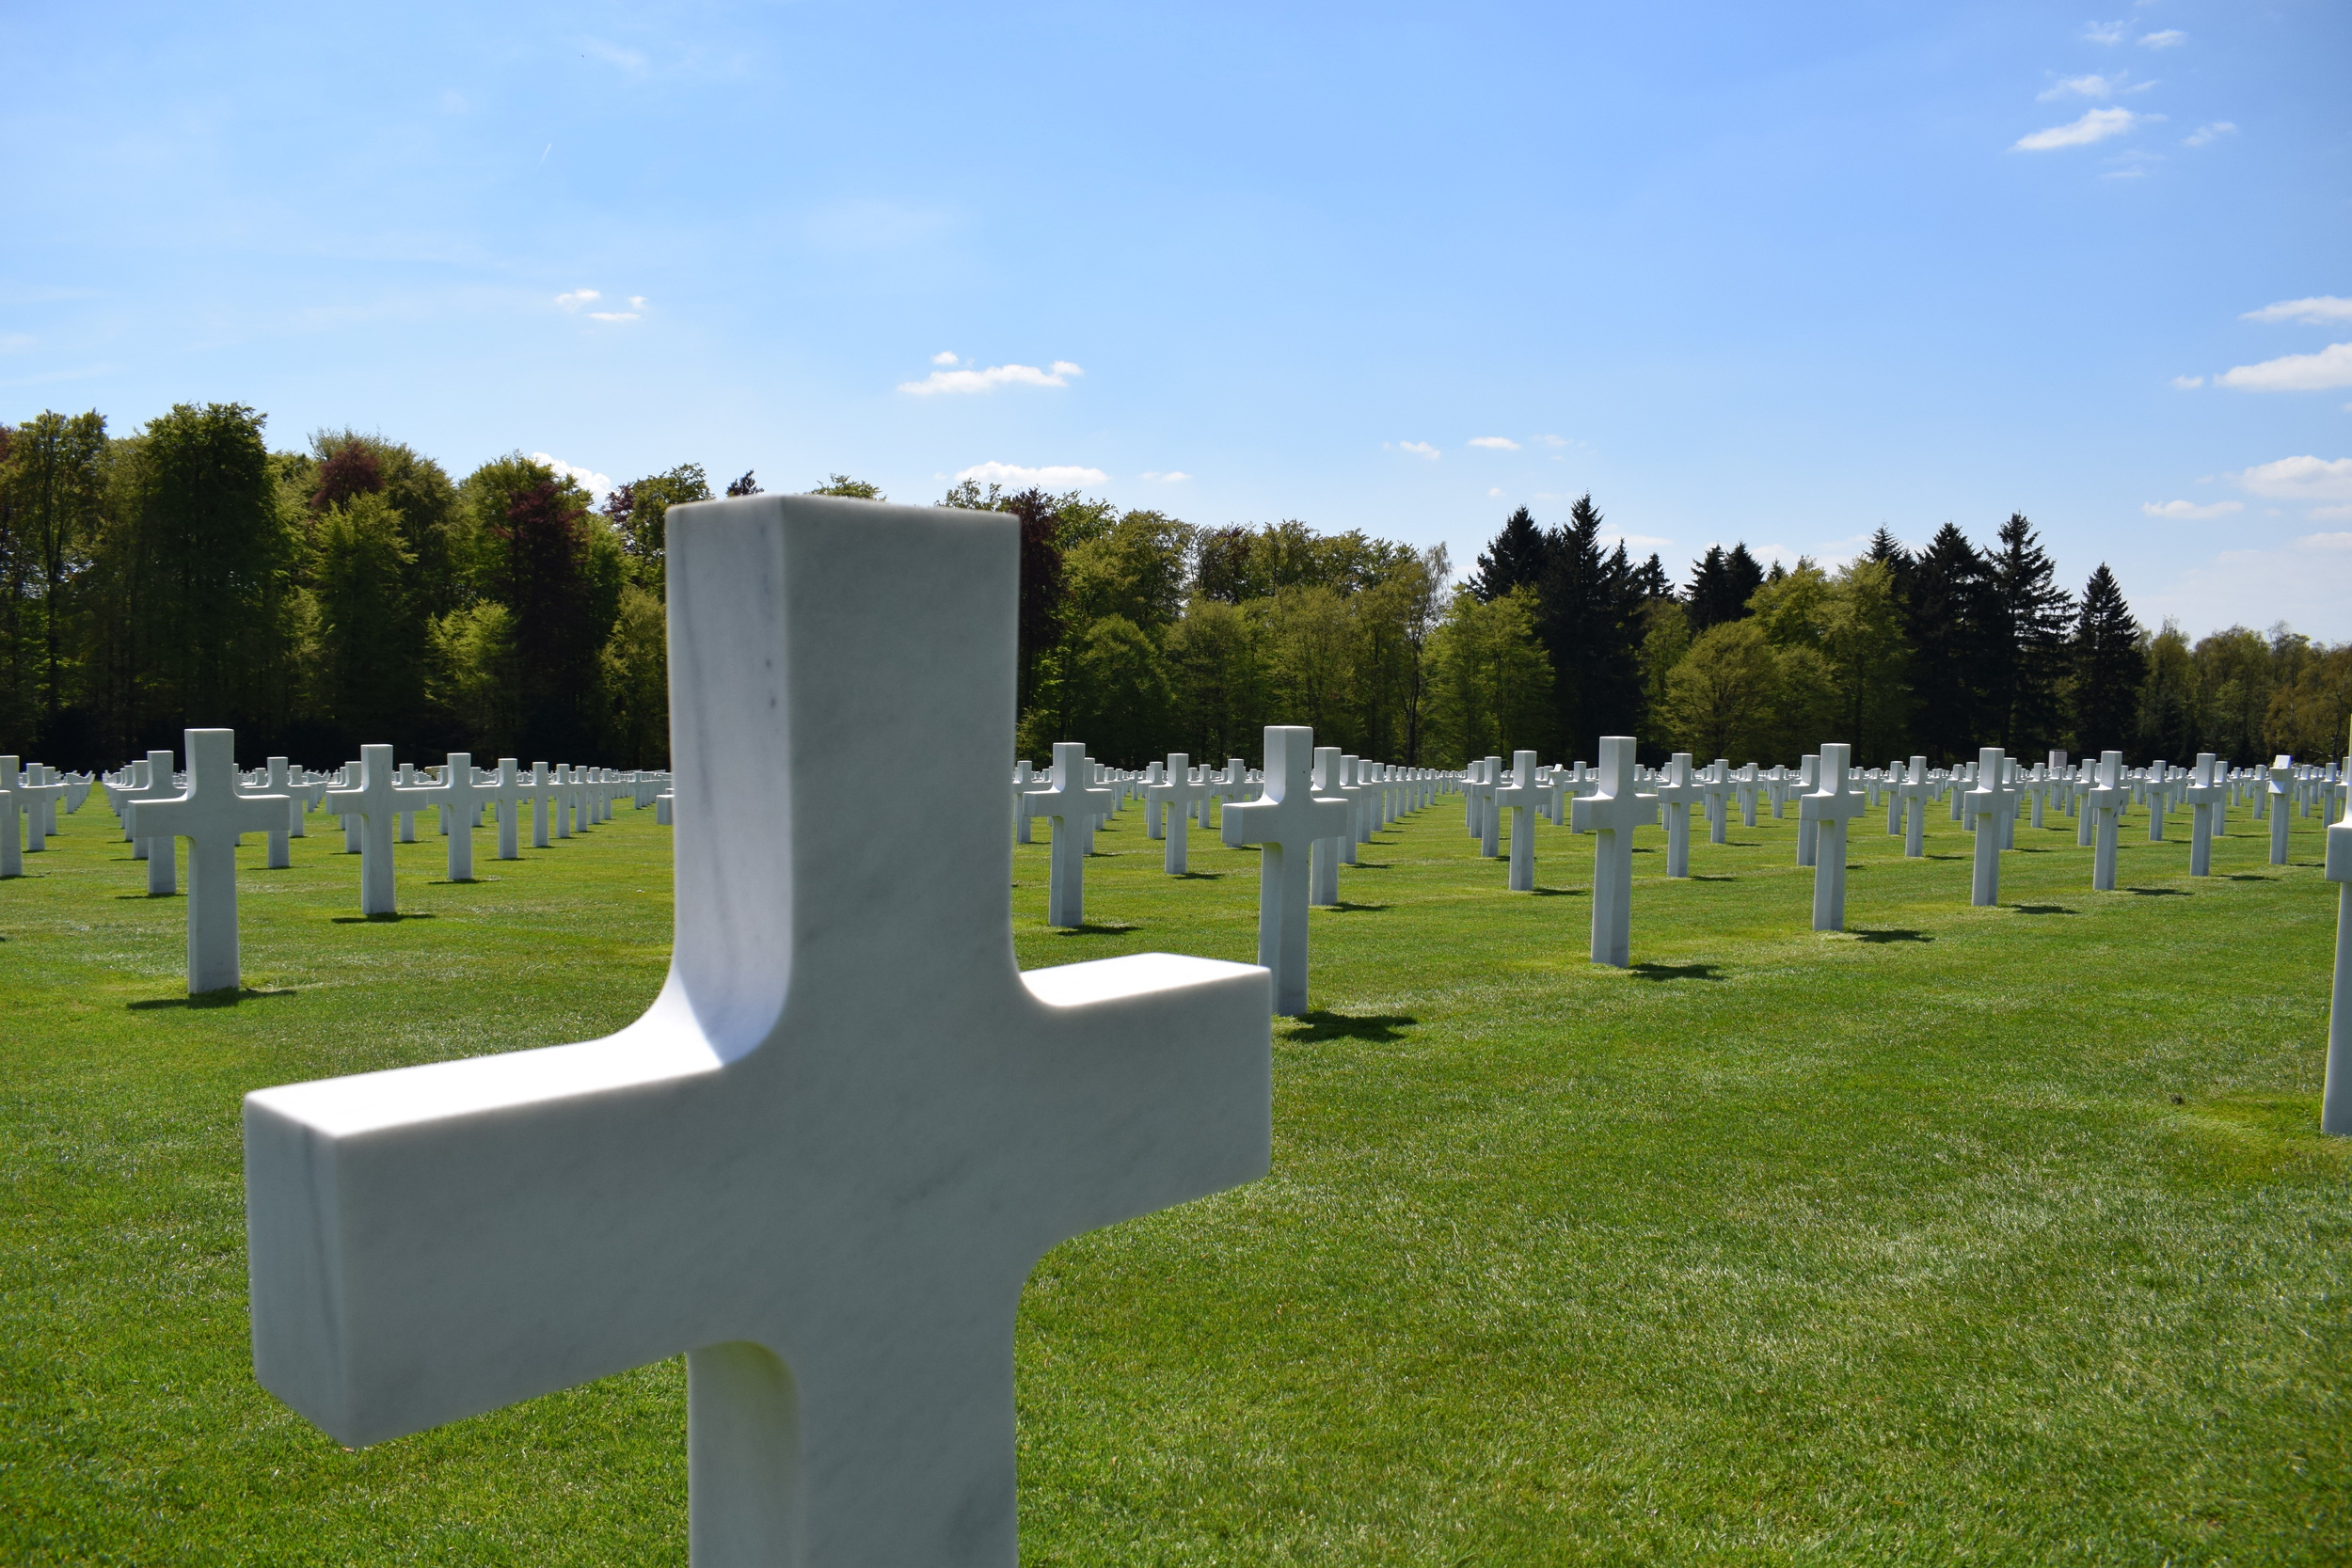 Rows and rows of marble graves take up much of the 50.5 acres of land at the cemetery.